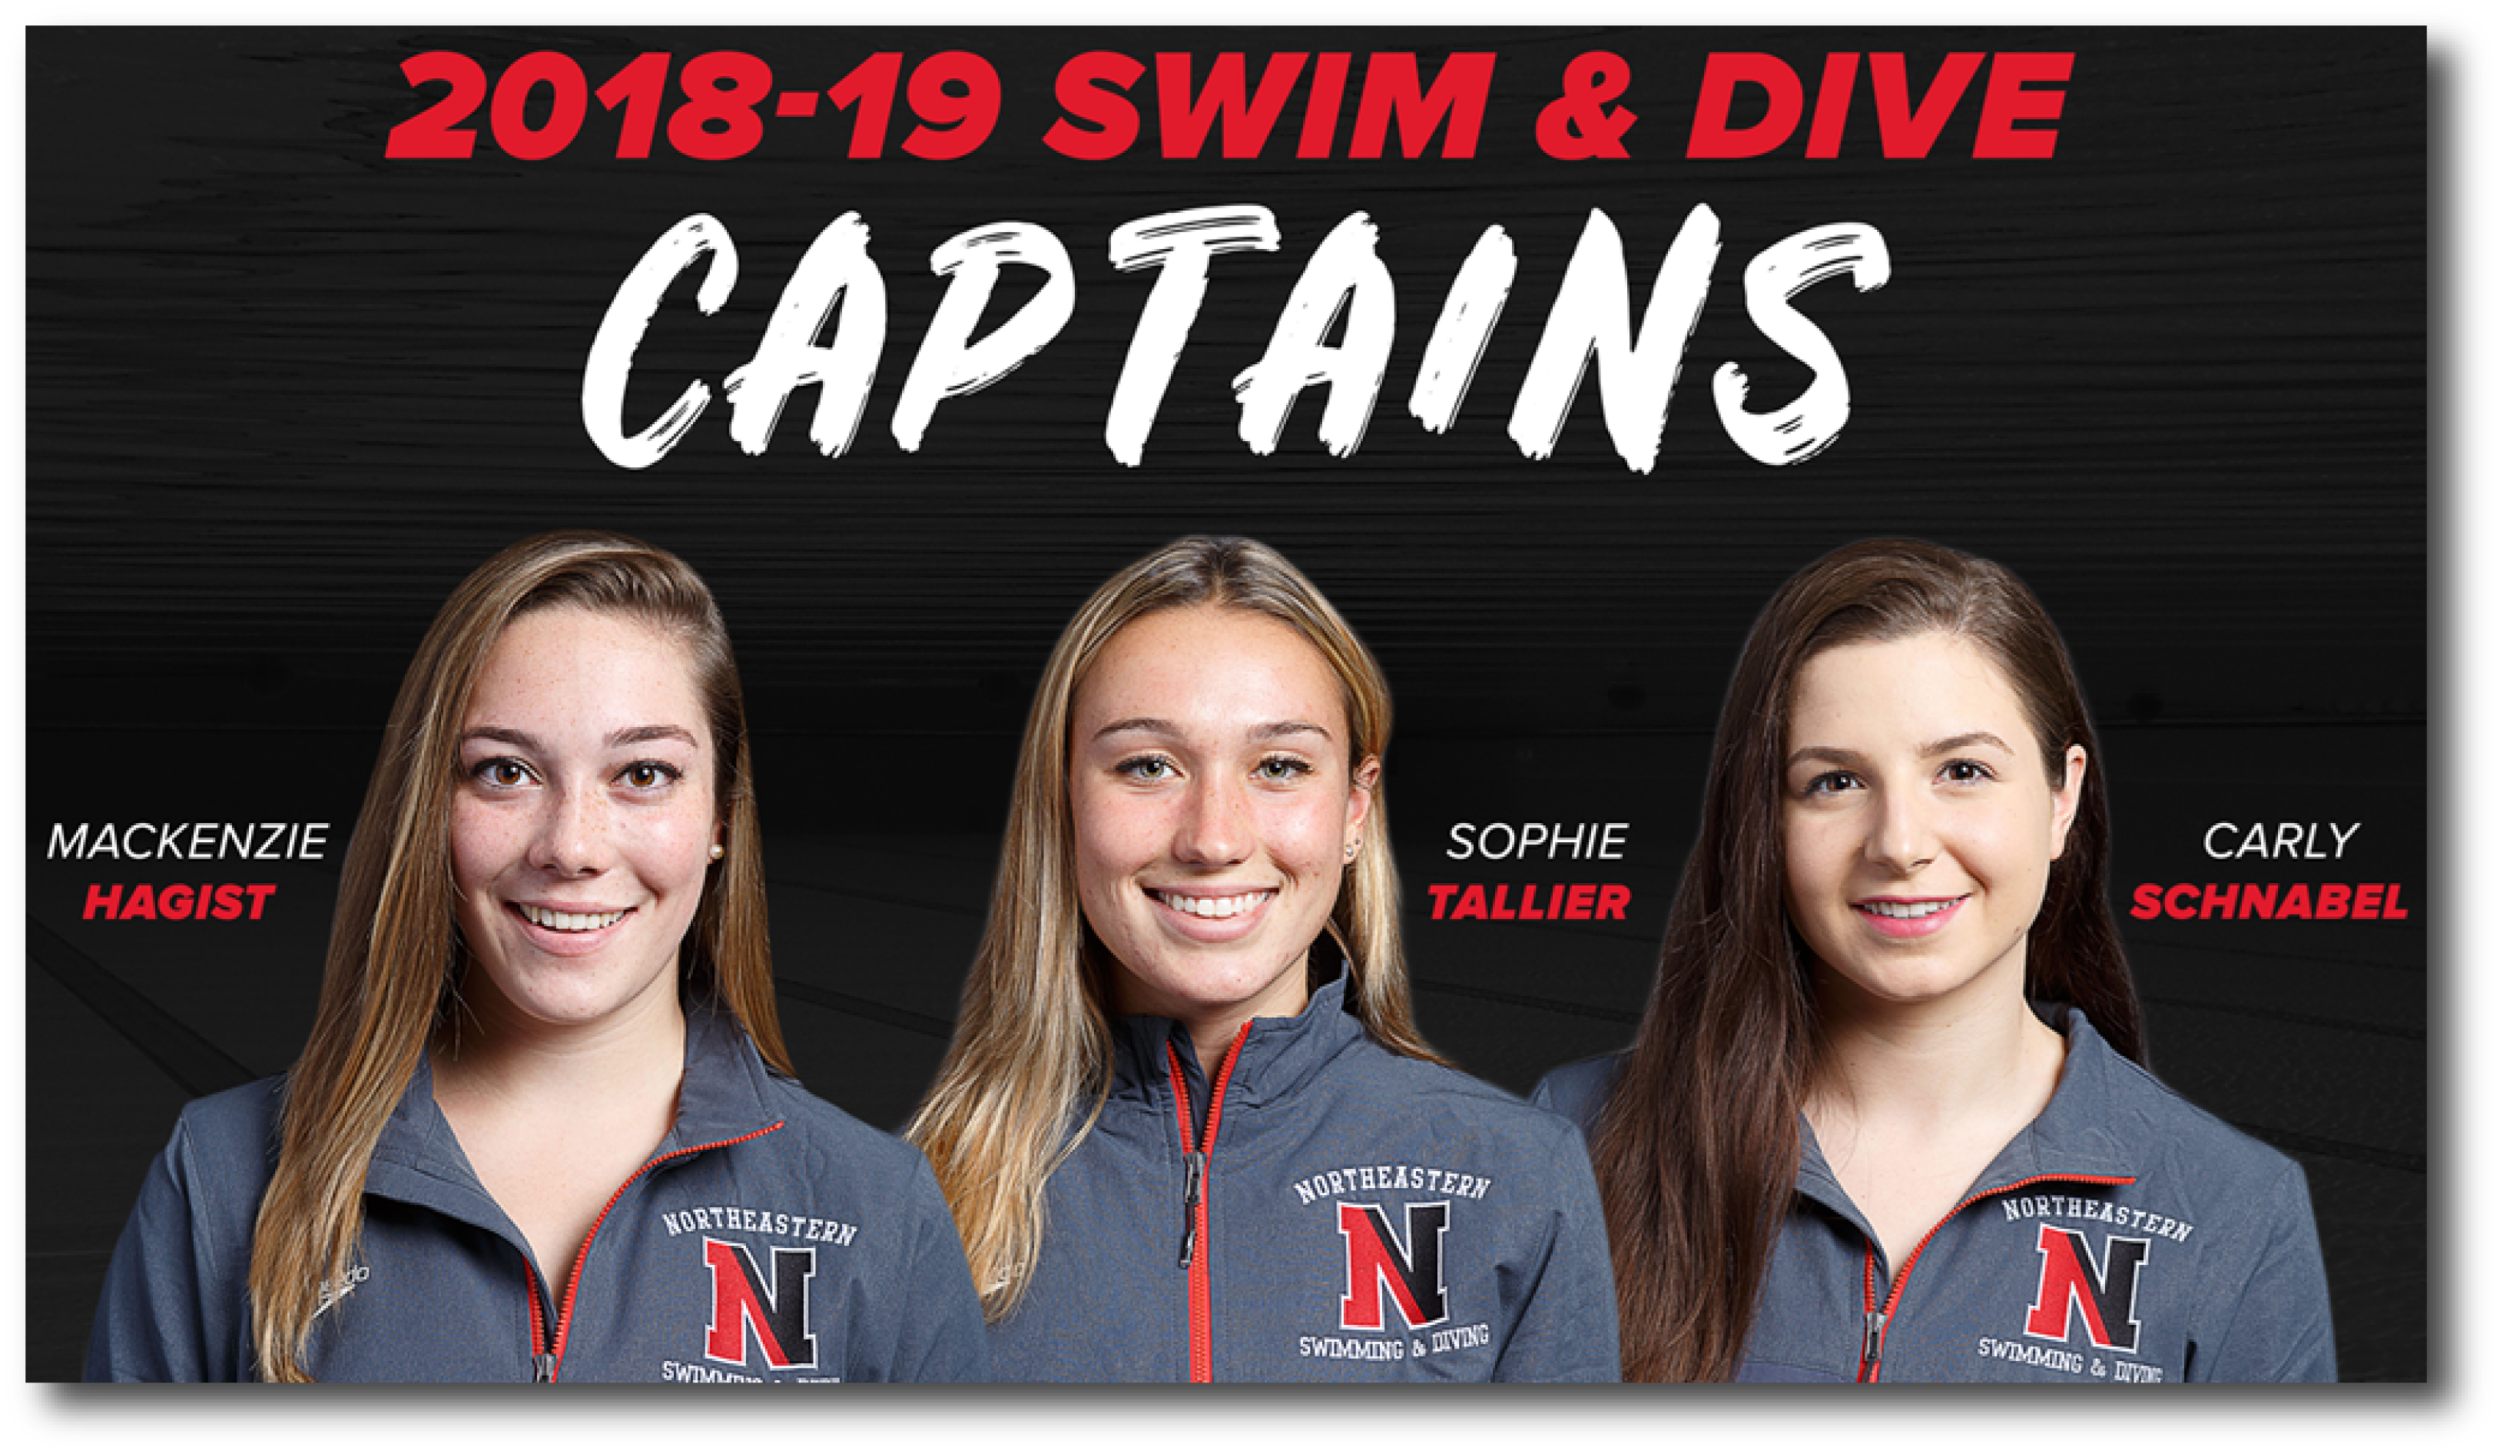 MacKenzie Hagist, LEFT, Captain Northeastern University Diving and Swimming Team